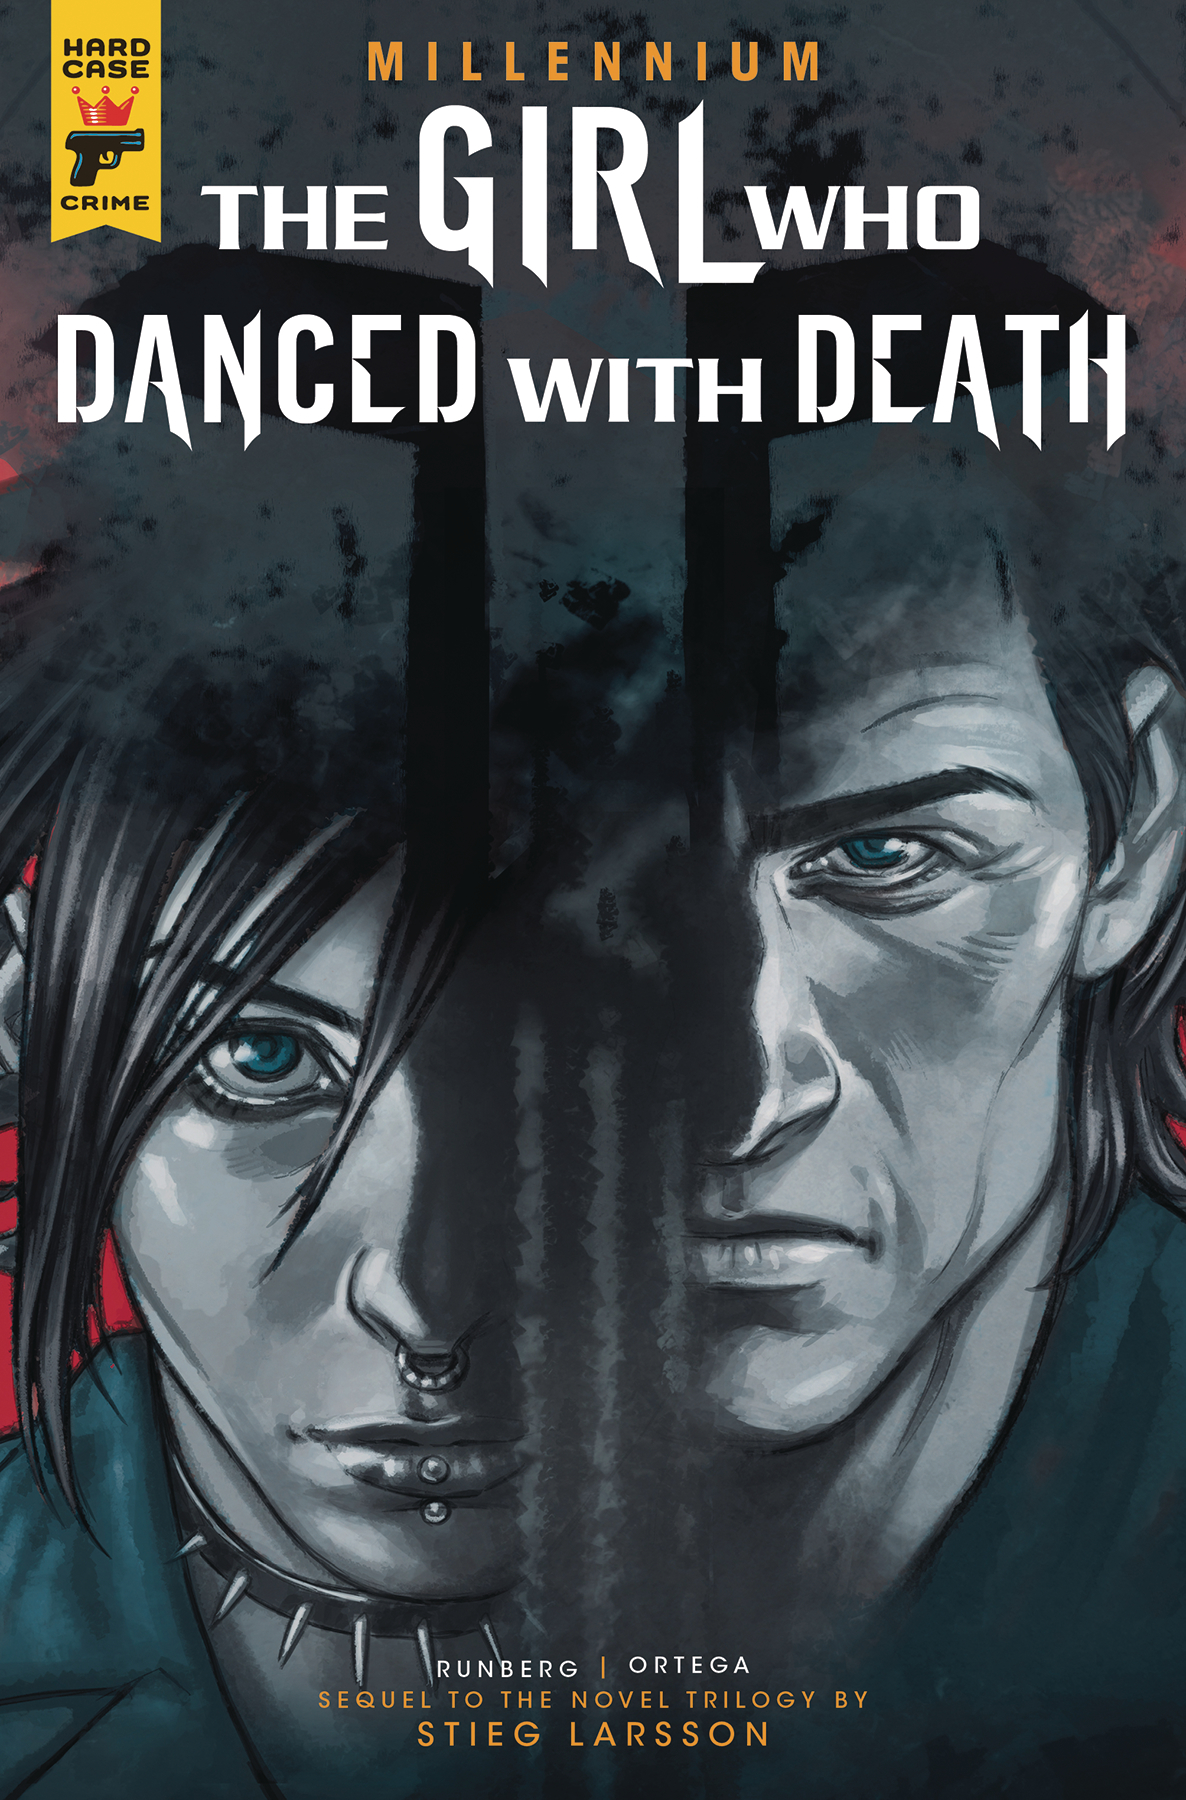 GIRL WHO DANCED WITH DEATH MILL SAGA #2